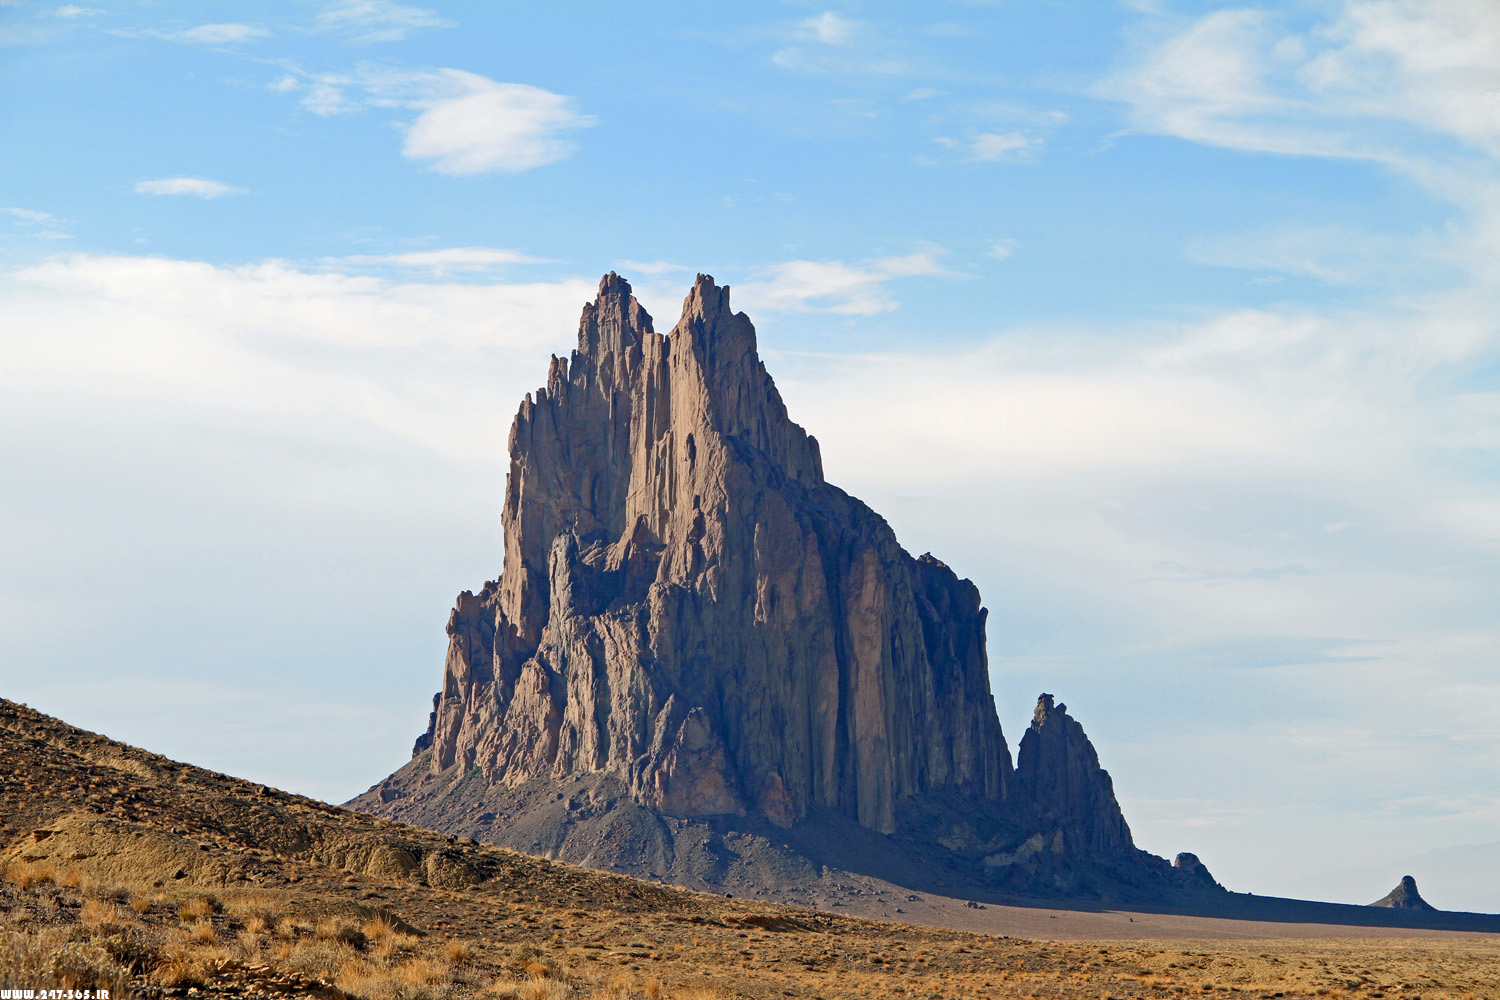 http://dl.247-365.ir/pic/tak_ax/Shiprock_Mountain_in_New_Mexico.jpg